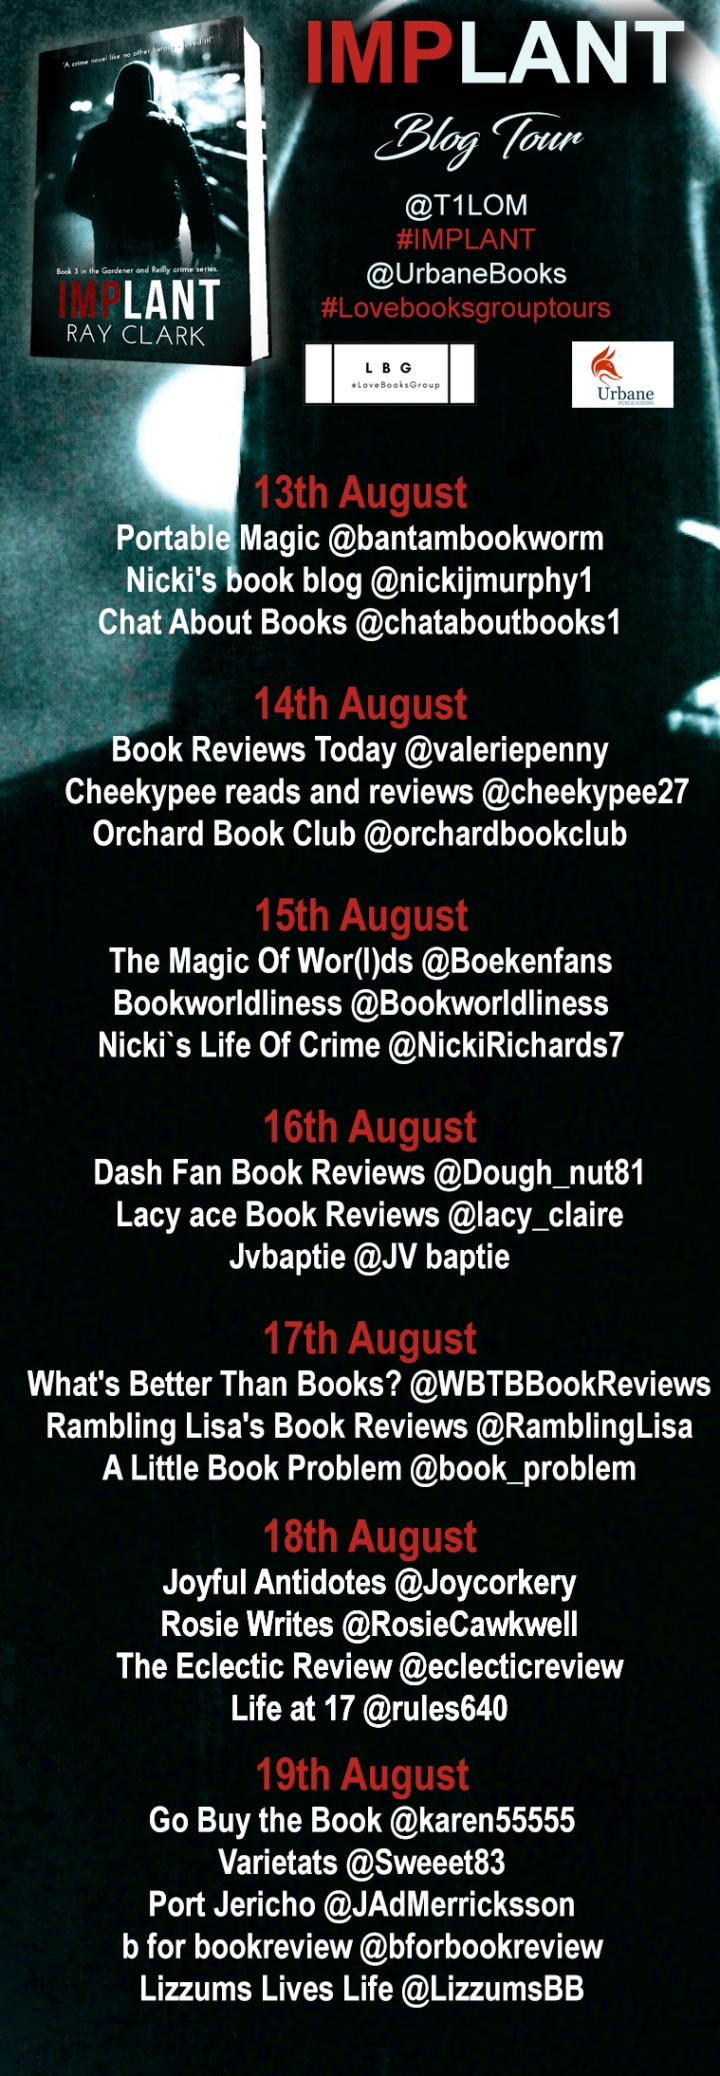 Implant blog tour poster